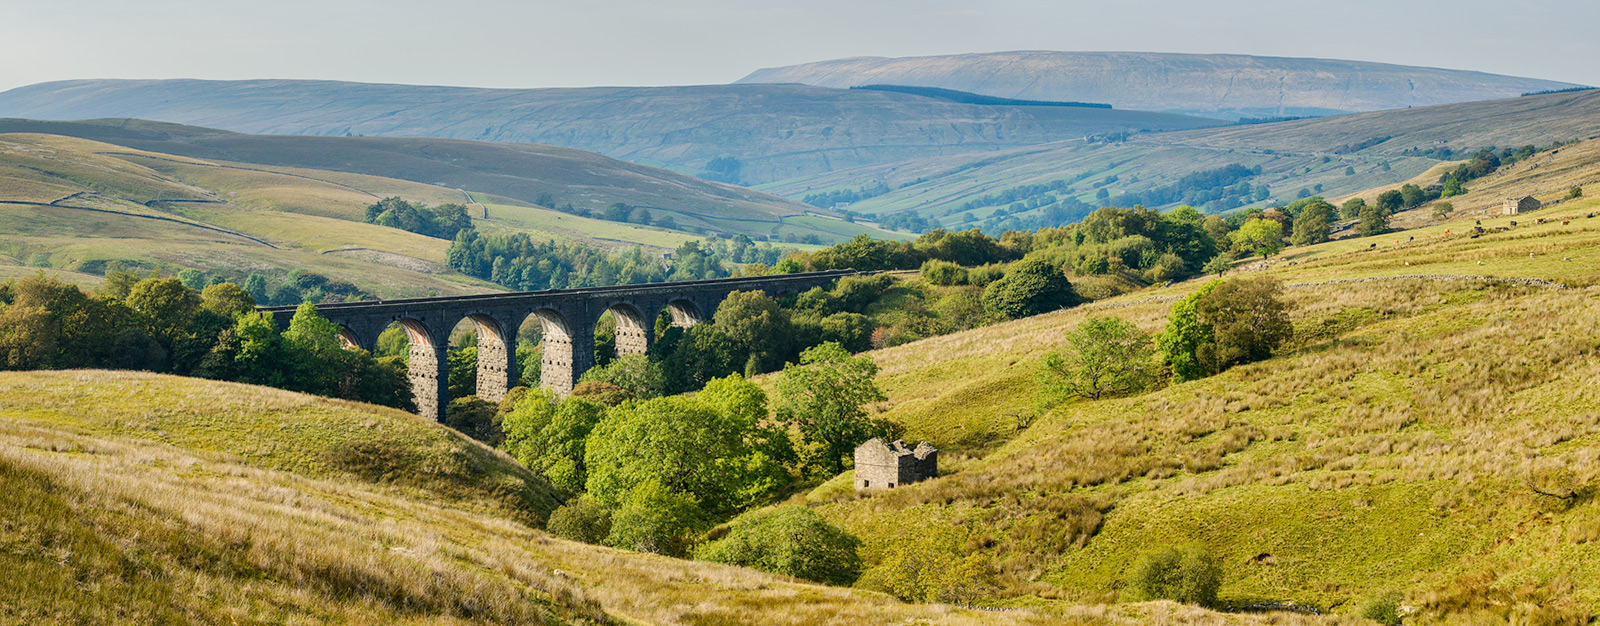 Dent Head Viaduct - stitched panorama from three frames